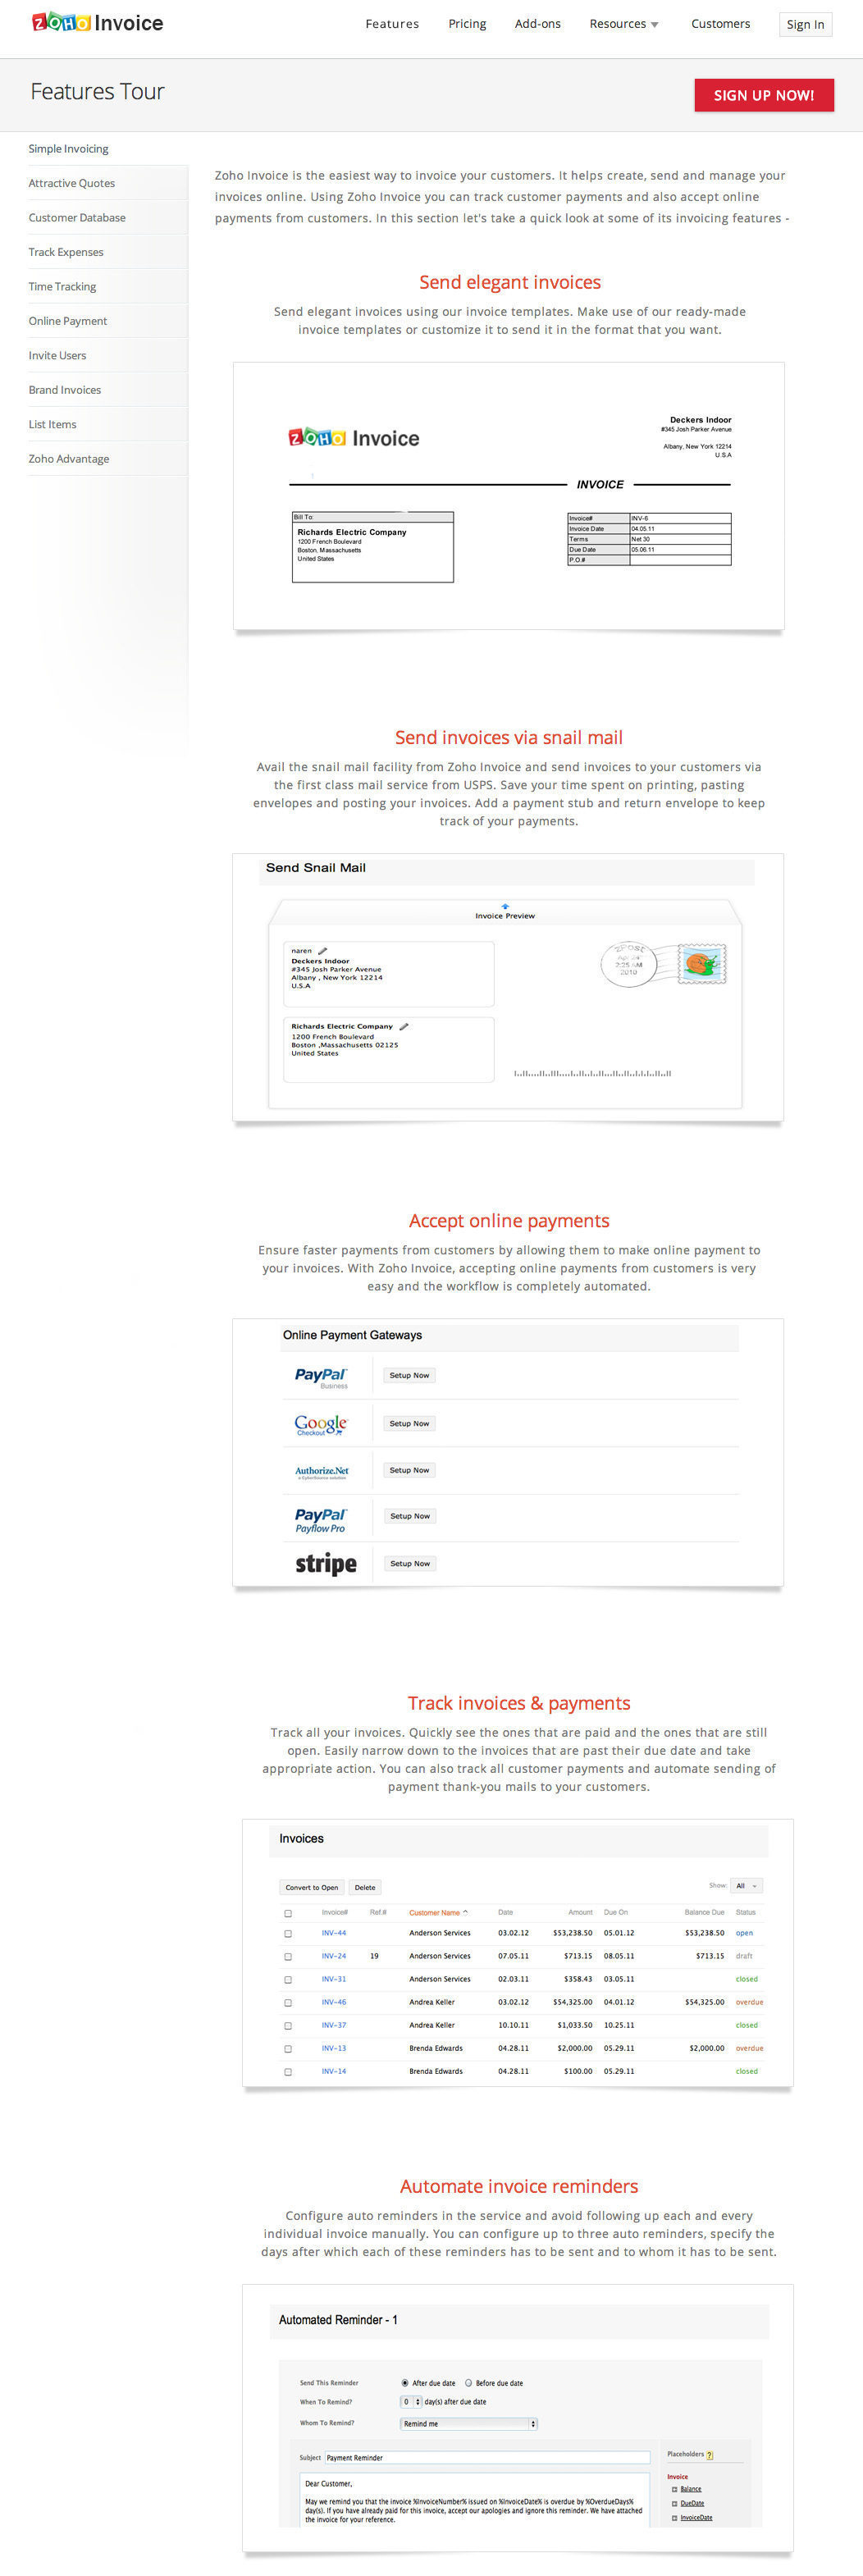 Usdgus  Inspiring Top  Complaints And Reviews About Zoho Invoice With Excellent Zoho Invoice Pricing Zoho Invoice  Simple Invoicing  With Beautiful Example Of Commercial Invoice For Export Also Medical Invoice Template Free In Addition On The Invoice Or In The Invoice And Customizing Invoices In Quickbooks As Well As Quill Com Invoice Additionally Quickbooks Export Invoice Template From Consumeraffairscom With Usdgus  Excellent Top  Complaints And Reviews About Zoho Invoice With Beautiful Zoho Invoice Pricing Zoho Invoice  Simple Invoicing  And Inspiring Example Of Commercial Invoice For Export Also Medical Invoice Template Free In Addition On The Invoice Or In The Invoice From Consumeraffairscom